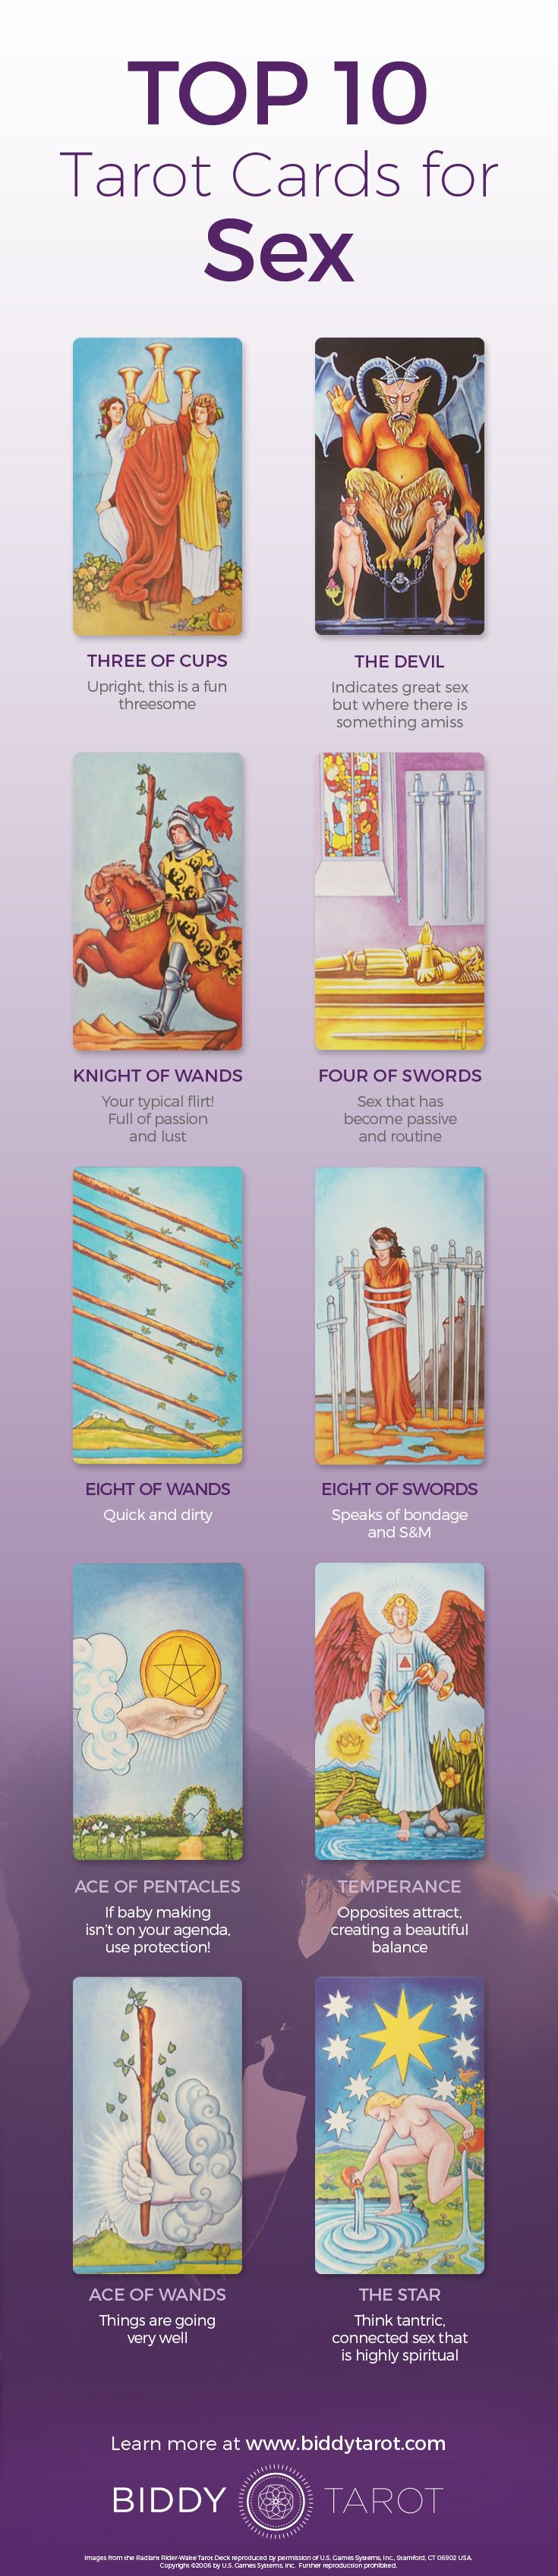 Things Are About To Heat Up When These Tarot Cards Appear Expect Things To